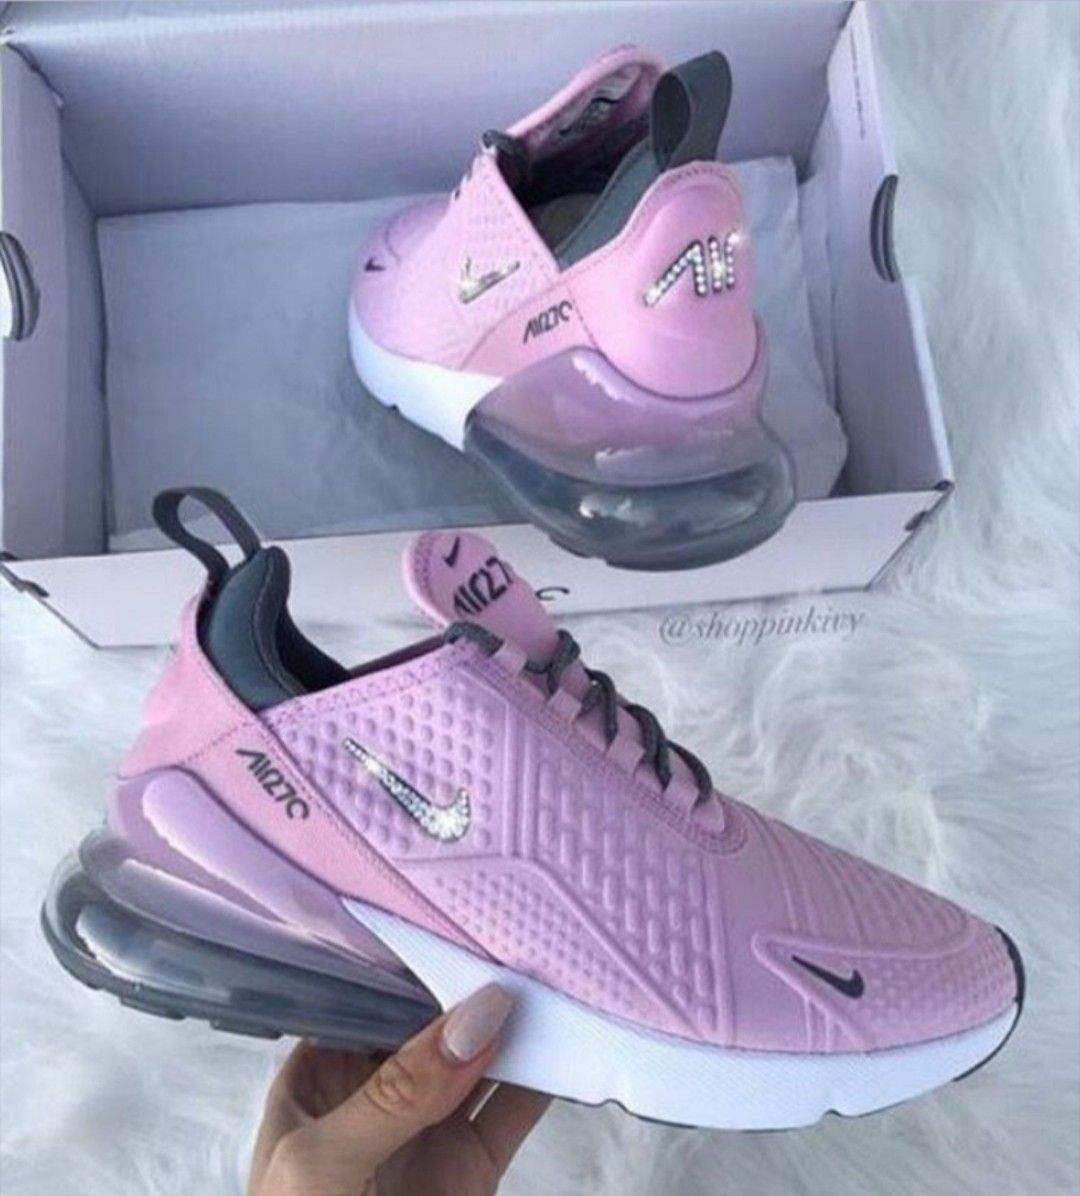 Pin By Vea 3 On Shoes Sneakers Fashion Nike Air Max Trending Boots